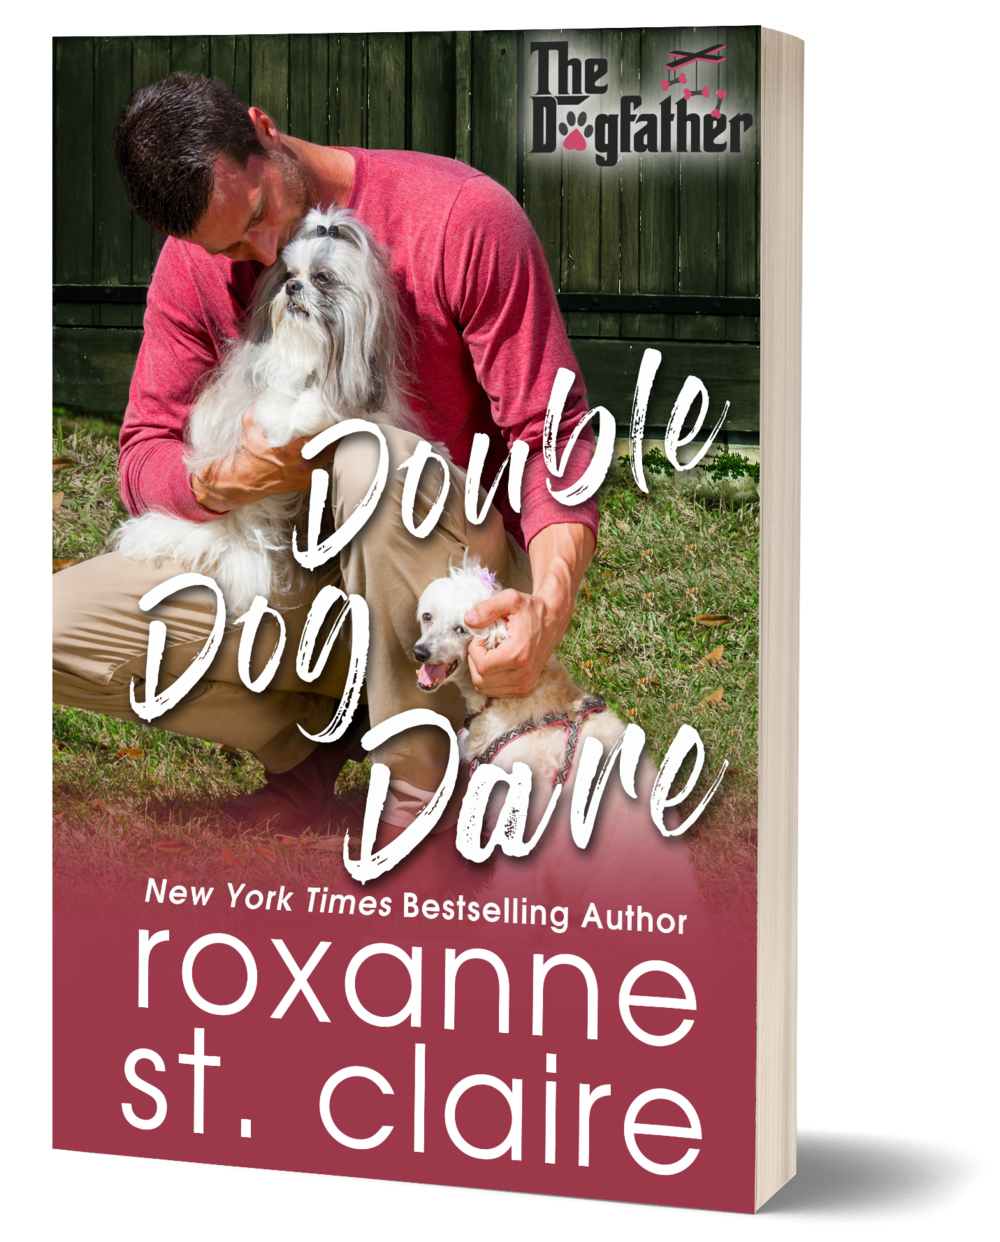 Double Dog Dare by Roxanne St. Claire